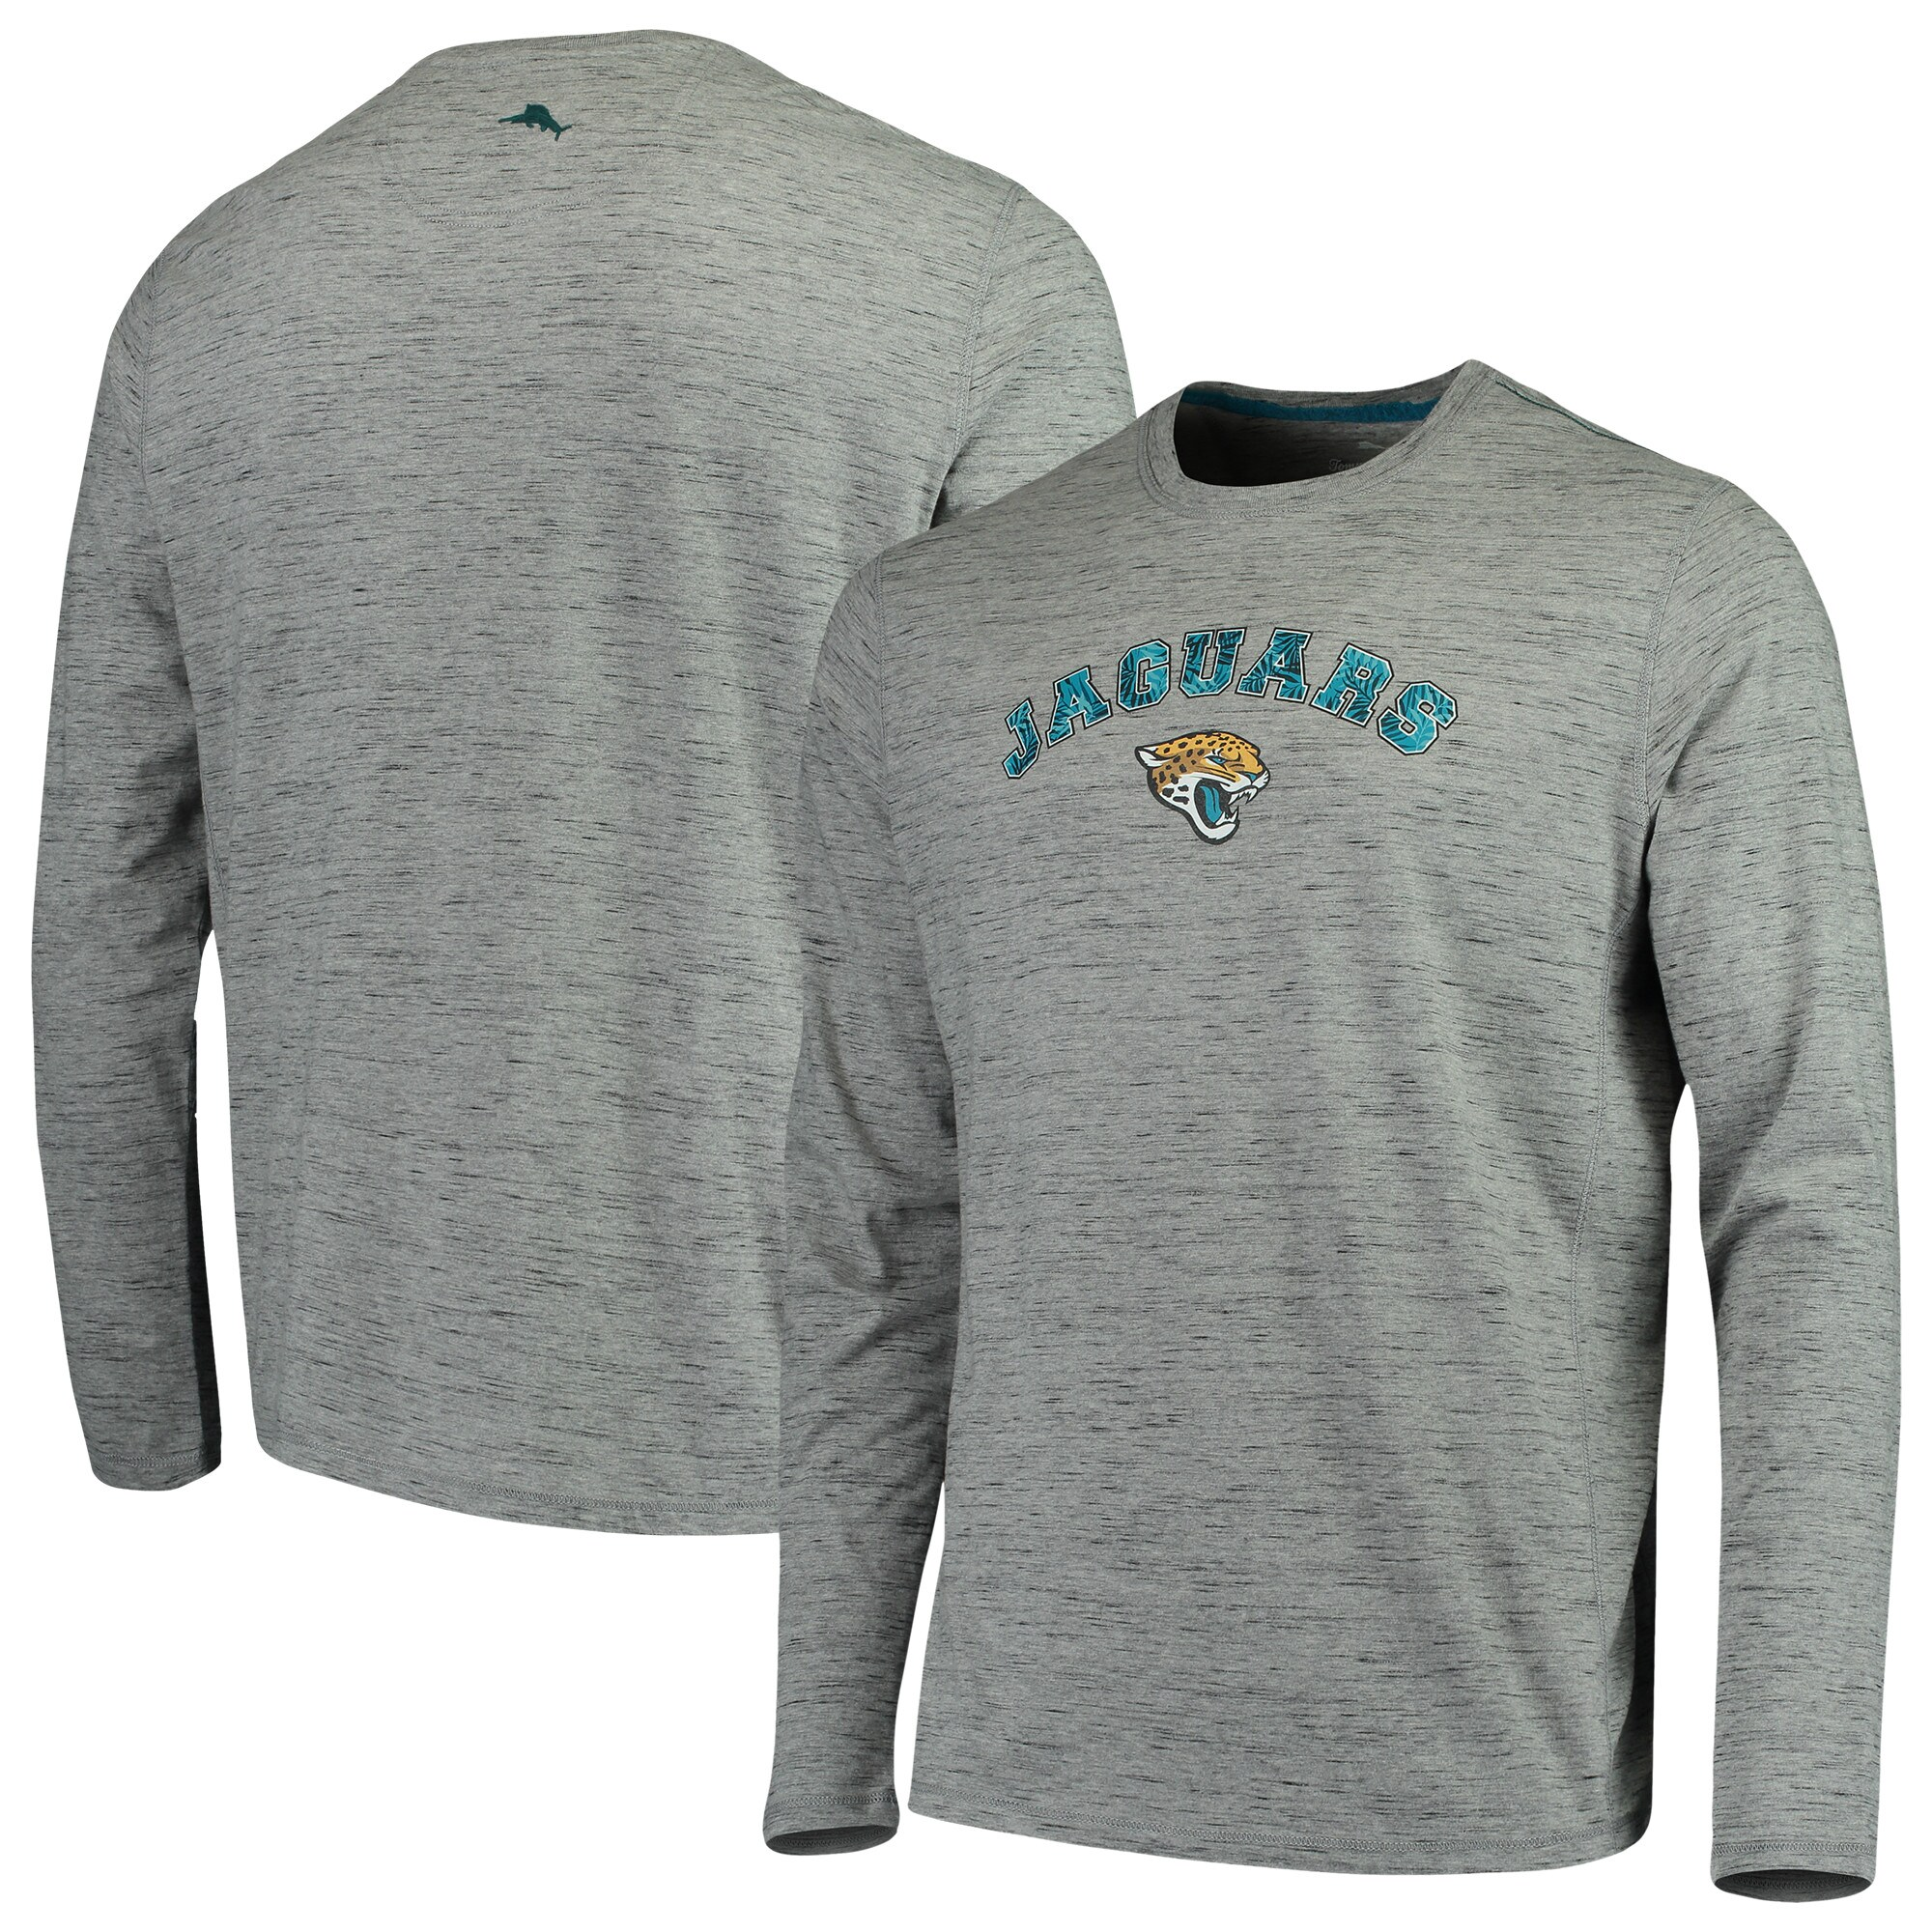 Jacksonville Jaguars Tommy Bahama Fronds In The Box Long Sleeve T-Shirt - Heathered Gray